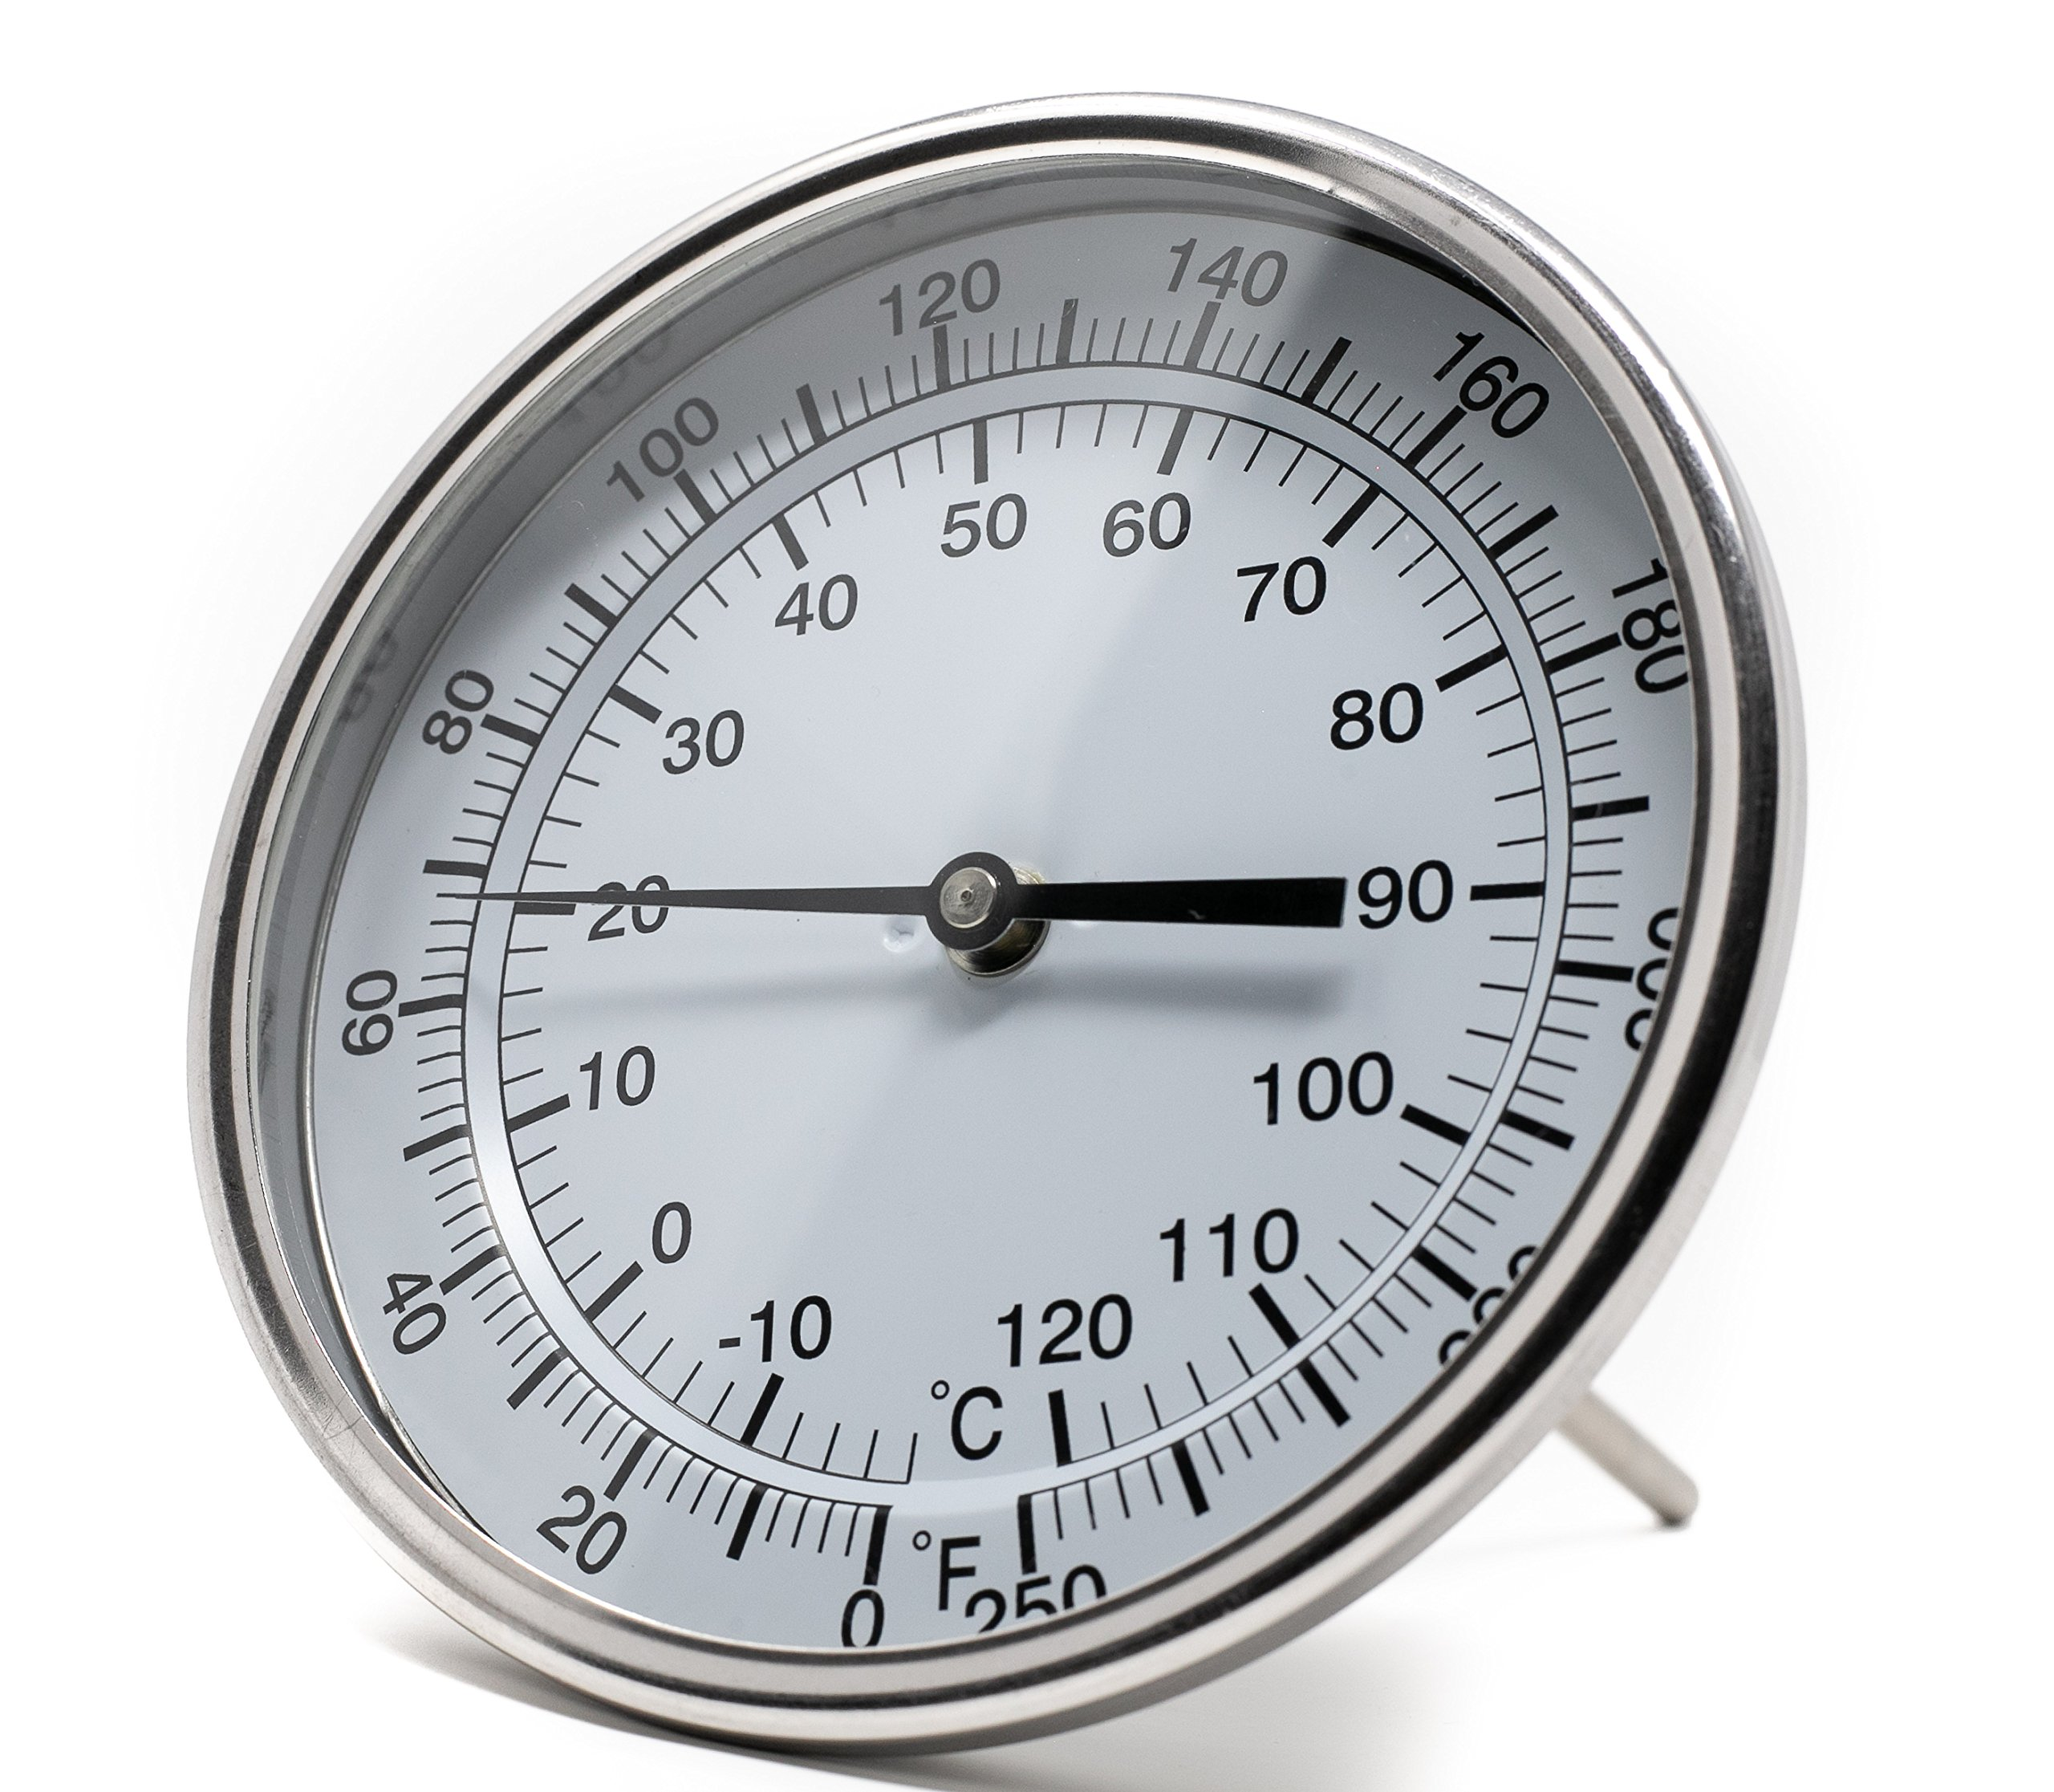 PIC Gauge B5B6-II 5'' Dial Size, 0/250°F and -18/121°C, 6'' Stem Length, Back Angle Connection, Stainless Steel Case, 316 Stainless Steel Stem Bimetal Thermometer by PIC Gauges